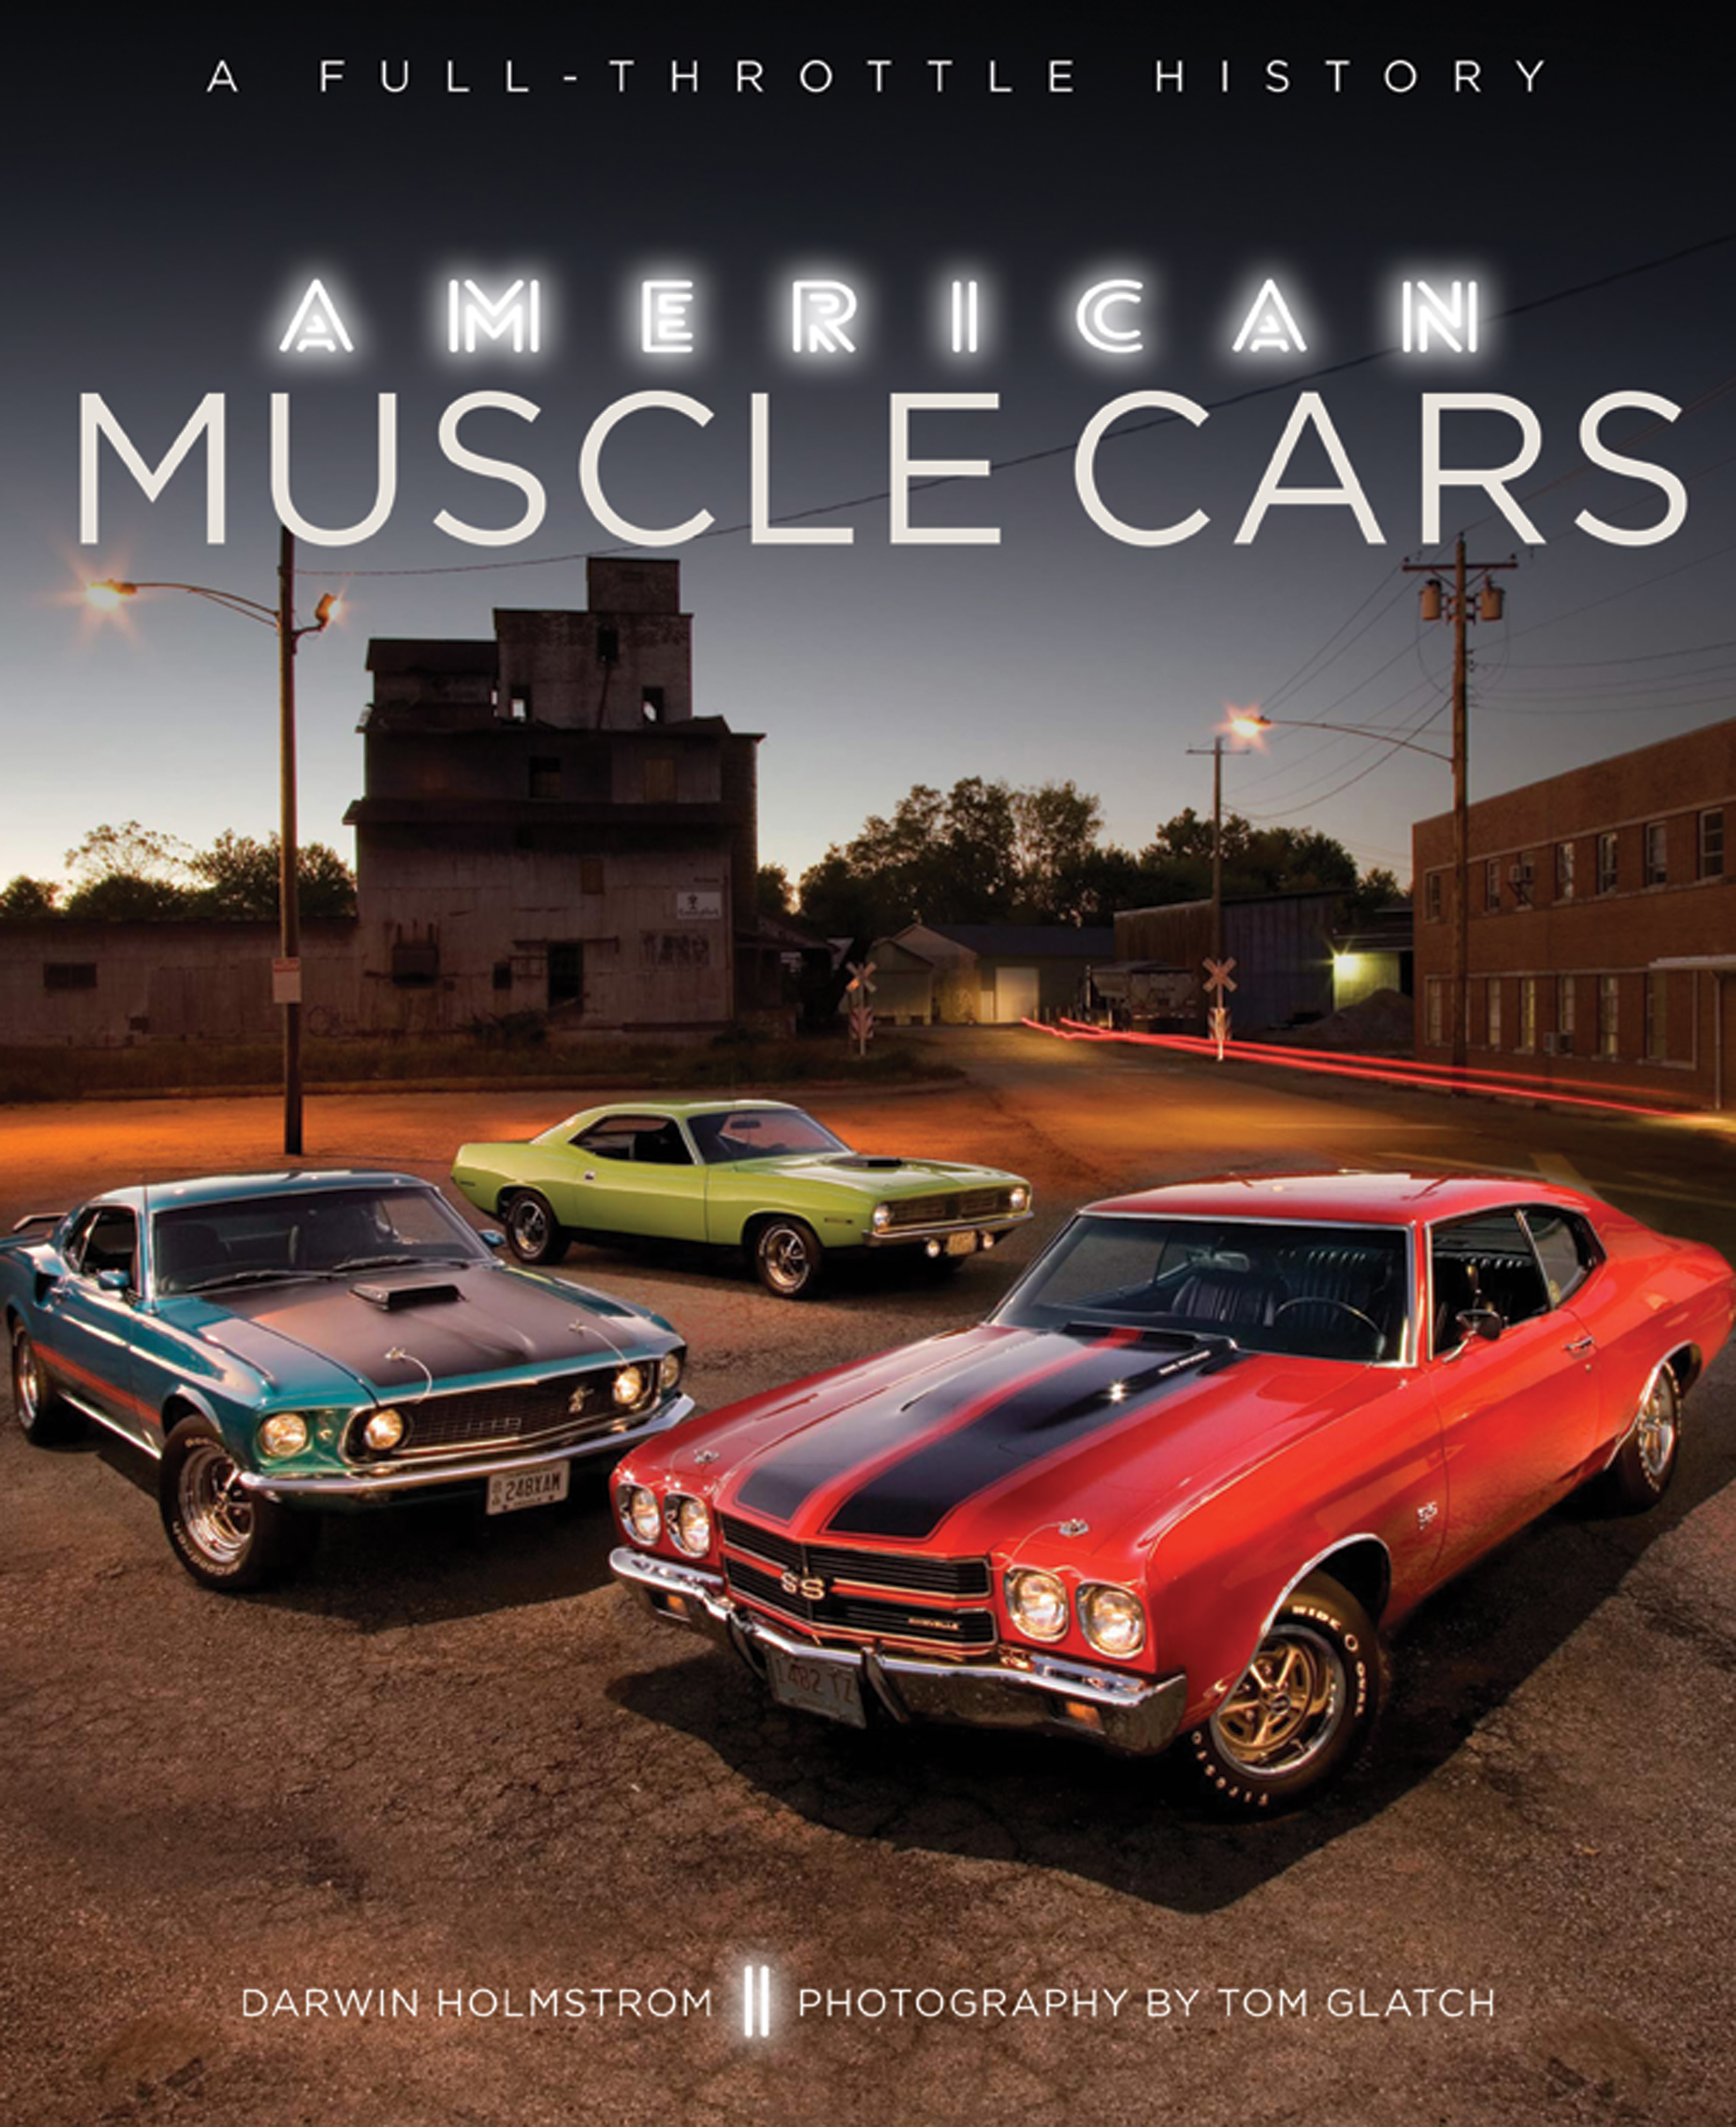 american muscle cars randy leffingwell 9780760350133 murdoch books. Black Bedroom Furniture Sets. Home Design Ideas